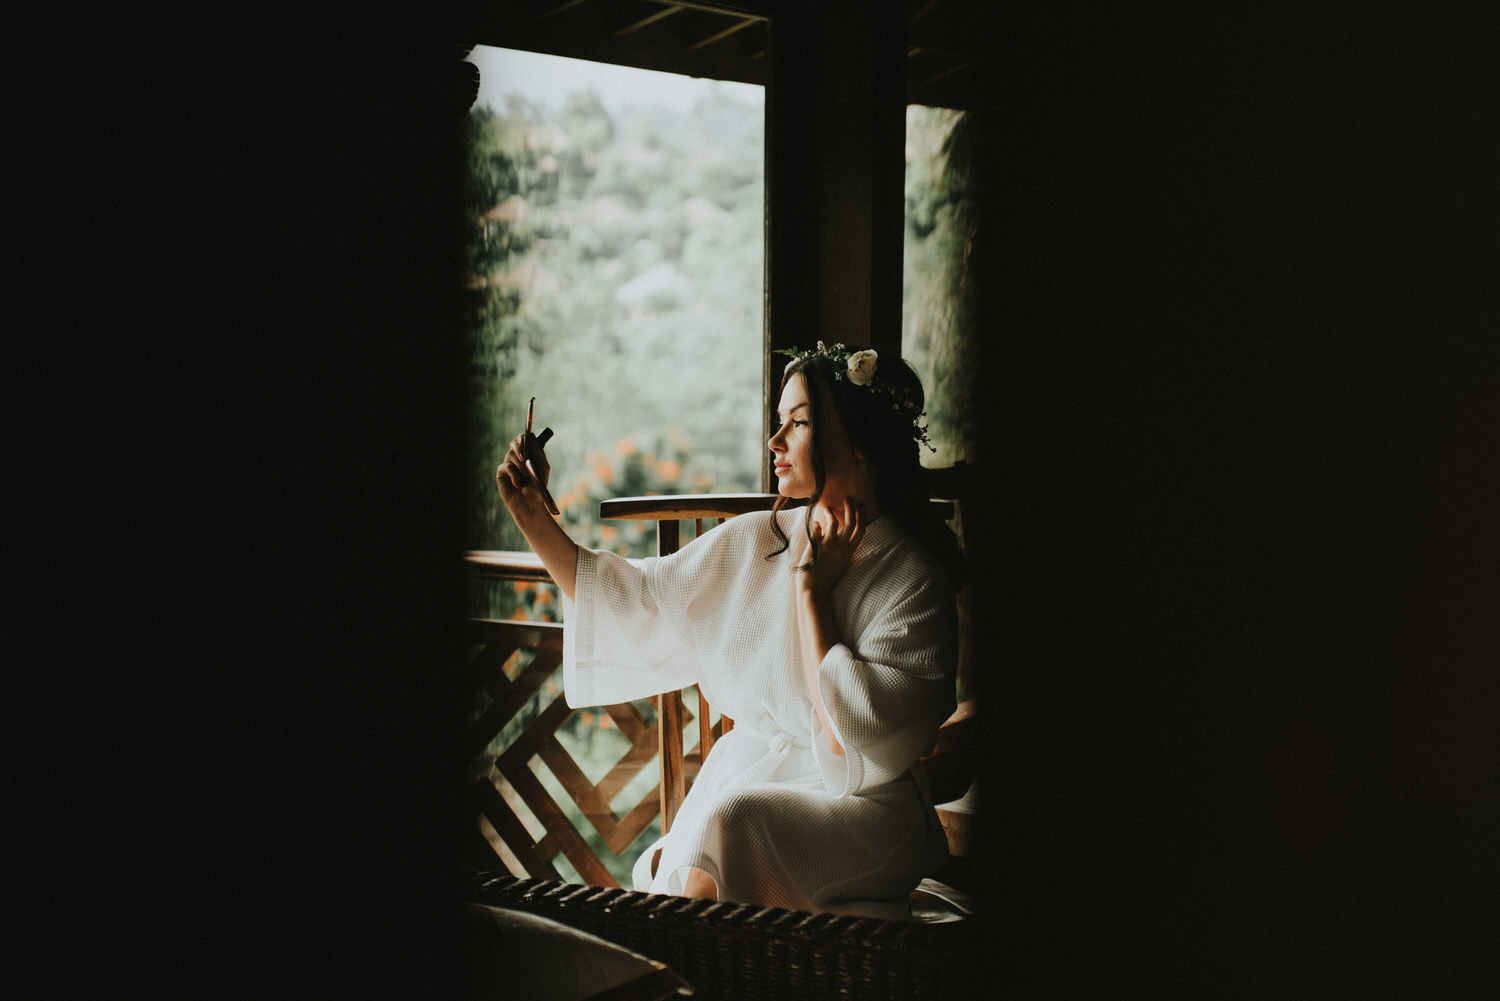 bali wedding - elopement - ubud wedding - diktatphotography - olga + Jason - 31